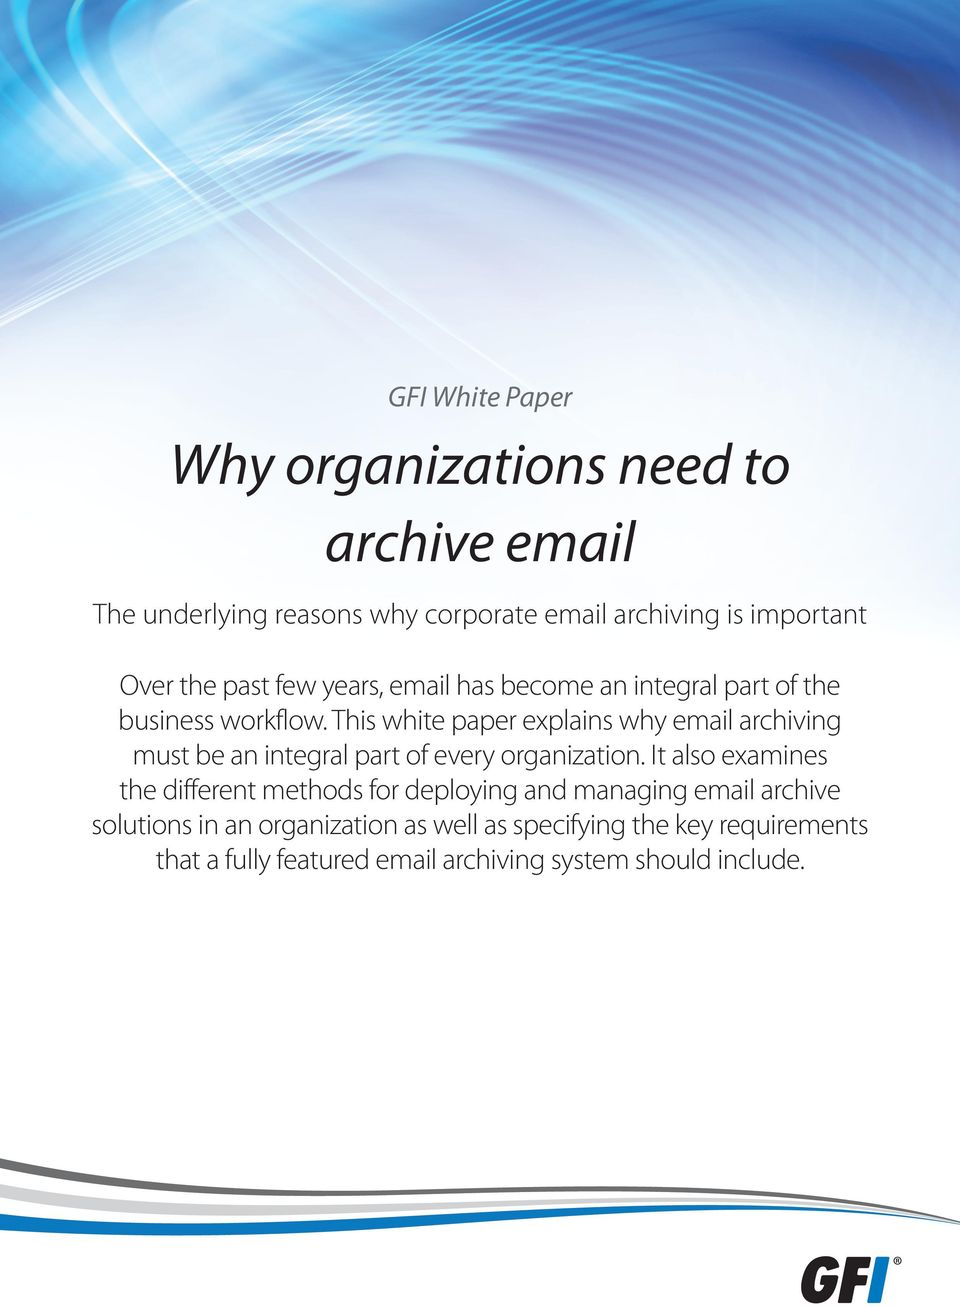 This white paper explains why email archiving must be an integral part of every organization.